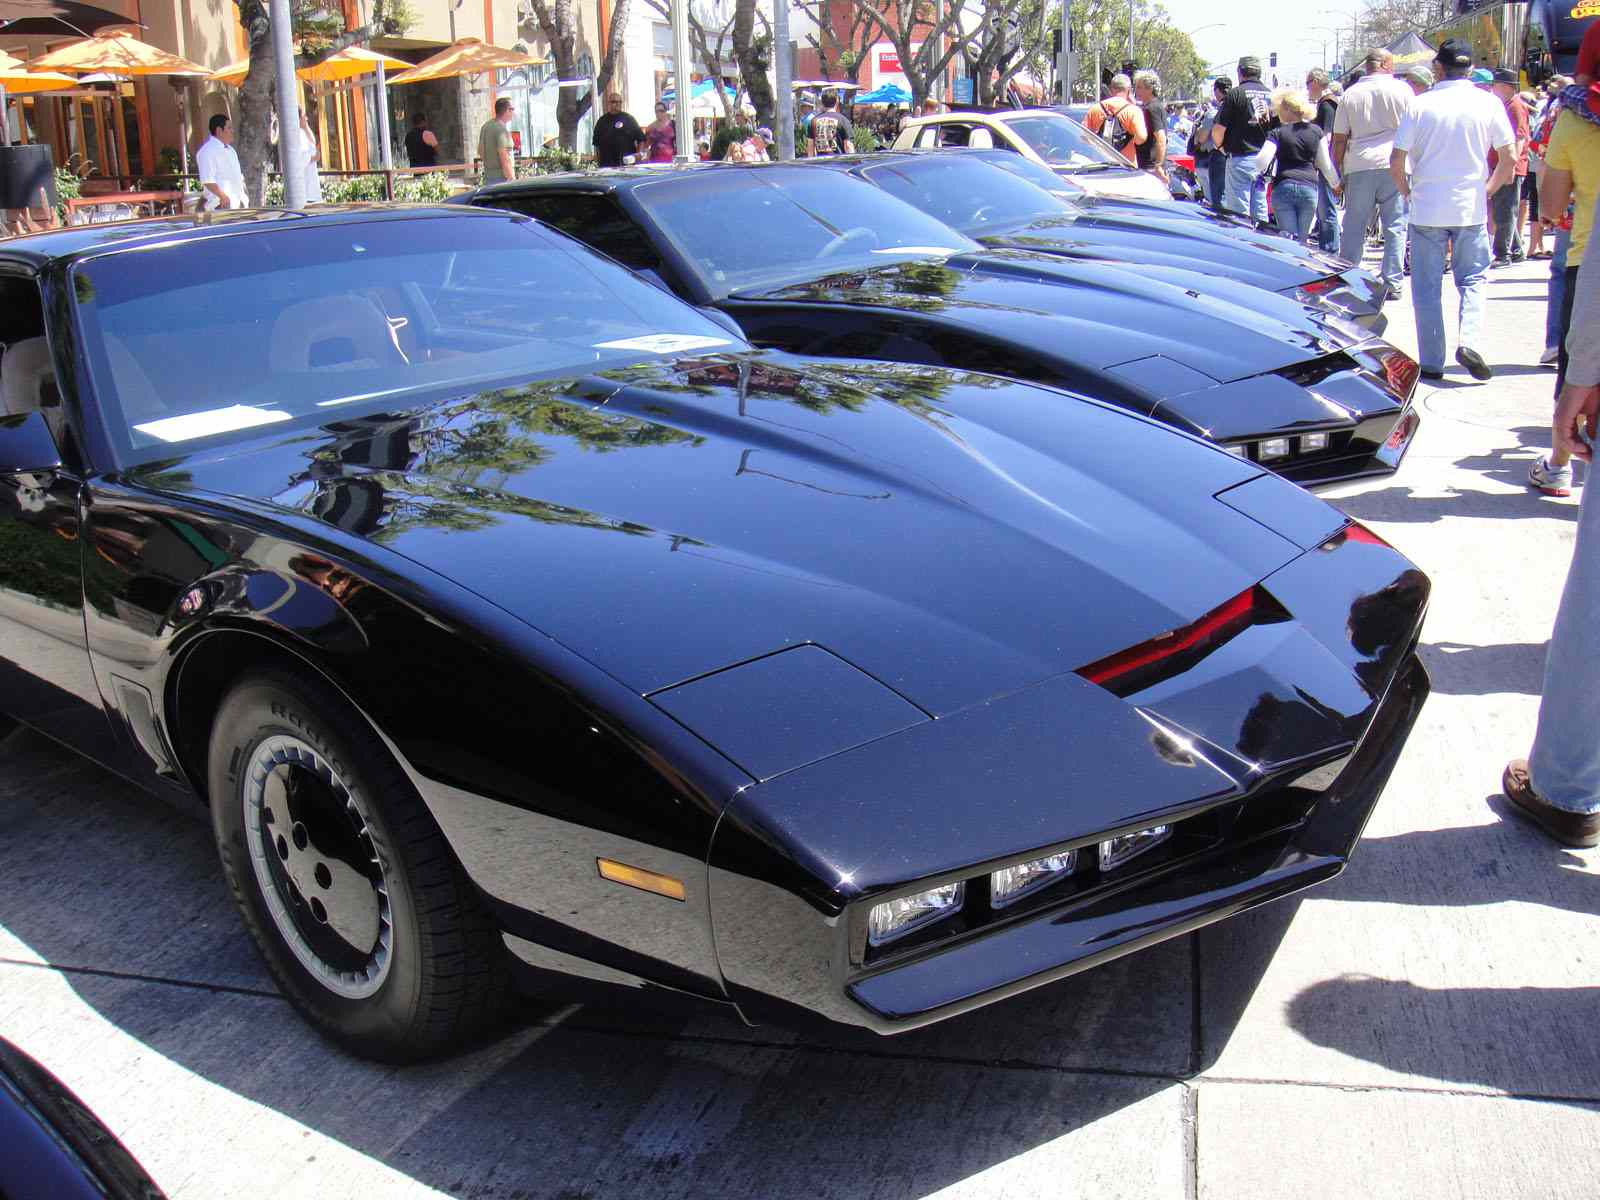 Annual Car Shows in Los Angeles